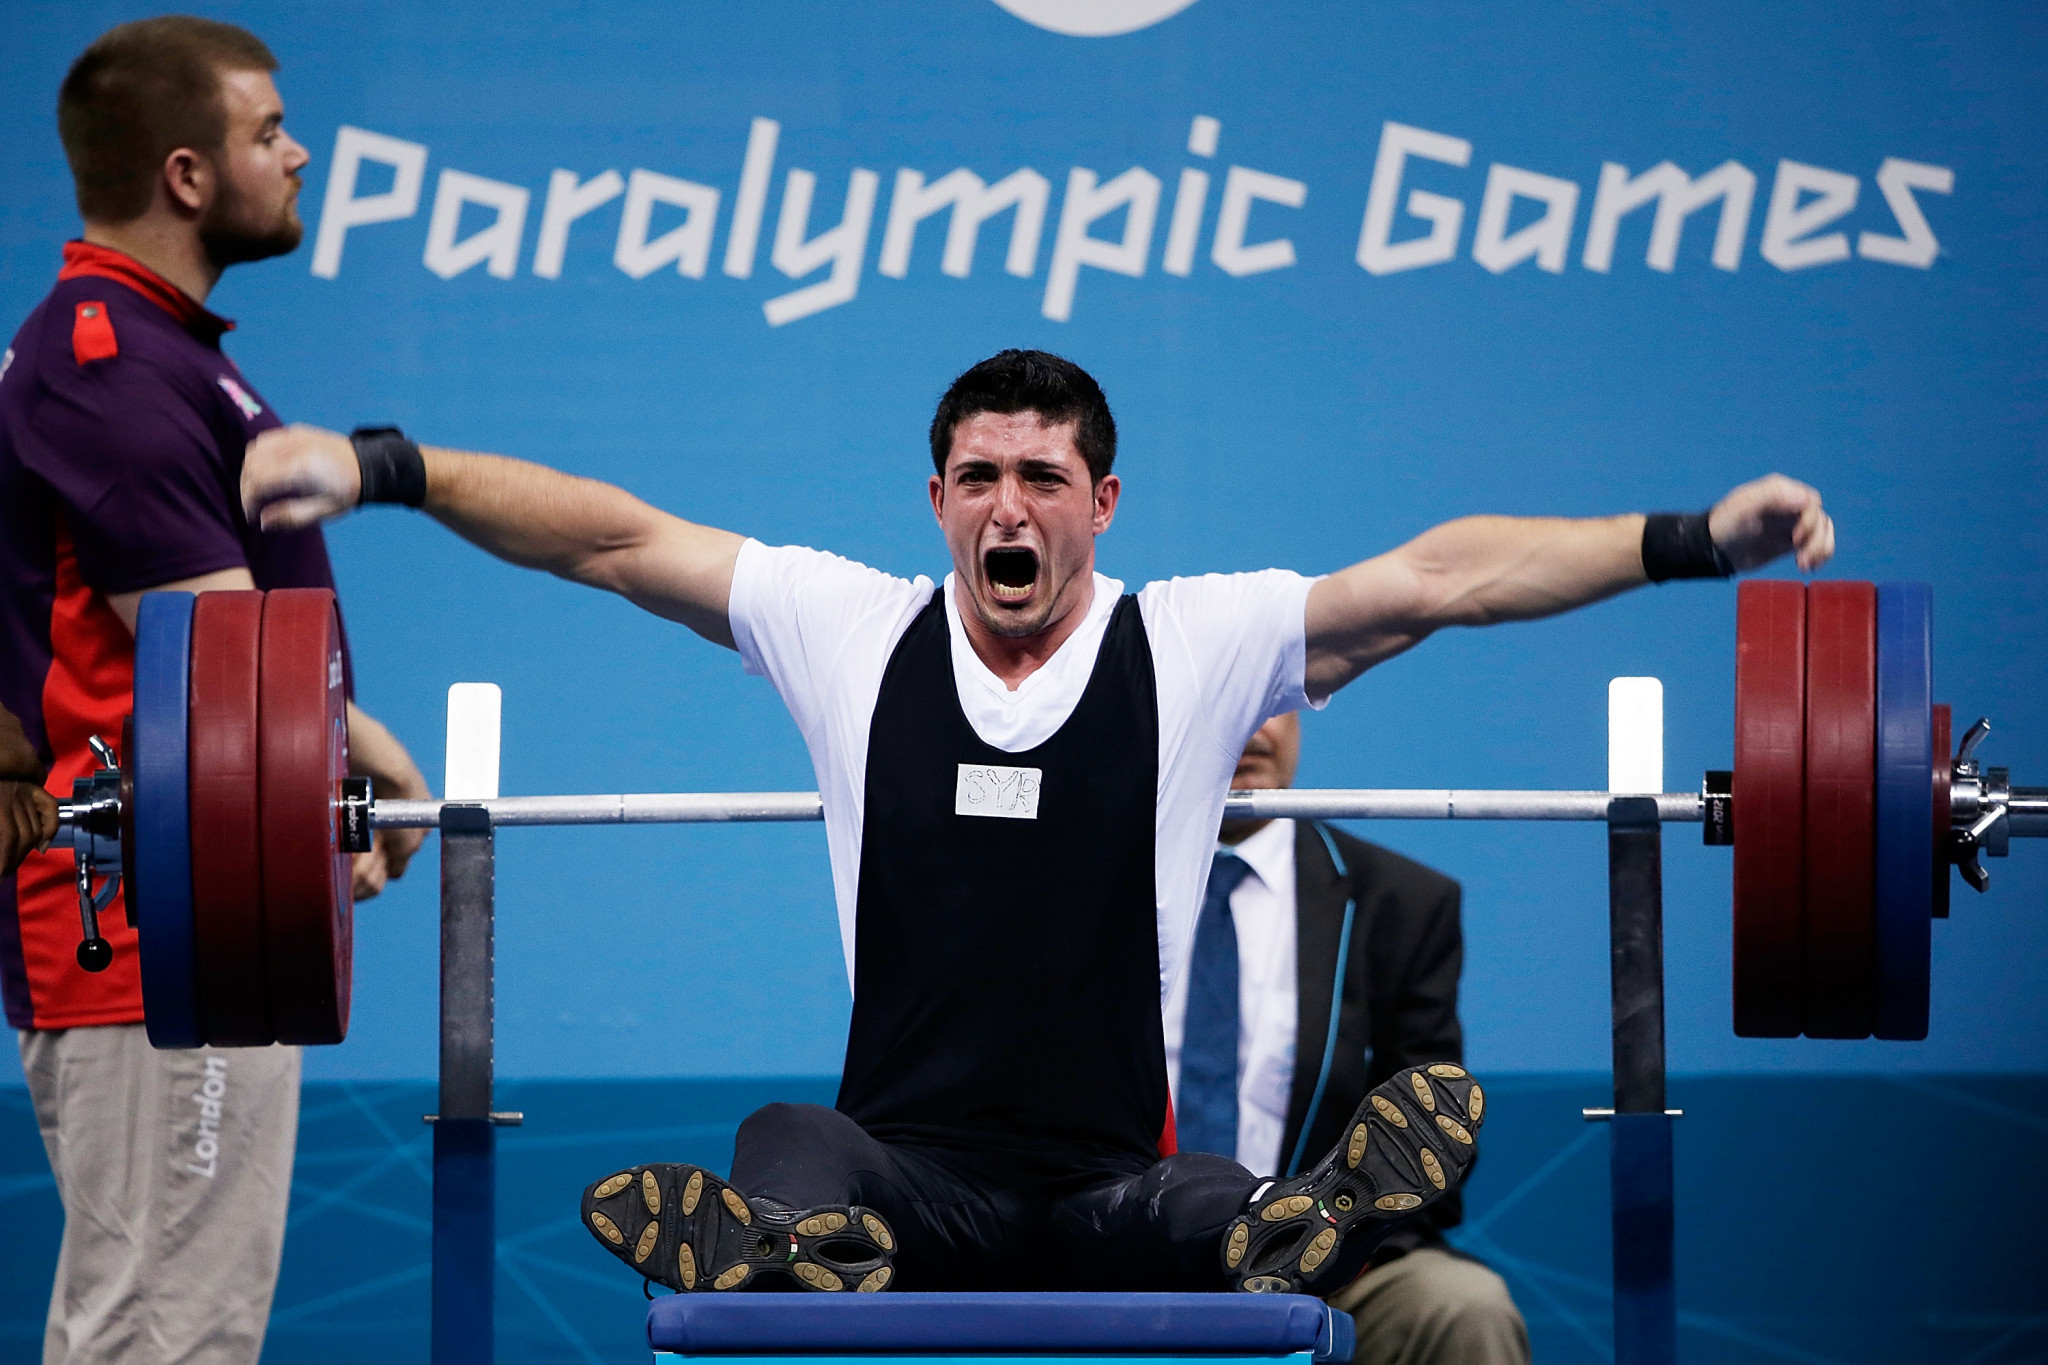 Syrian powerlifter suspended for committing anti-doping violation